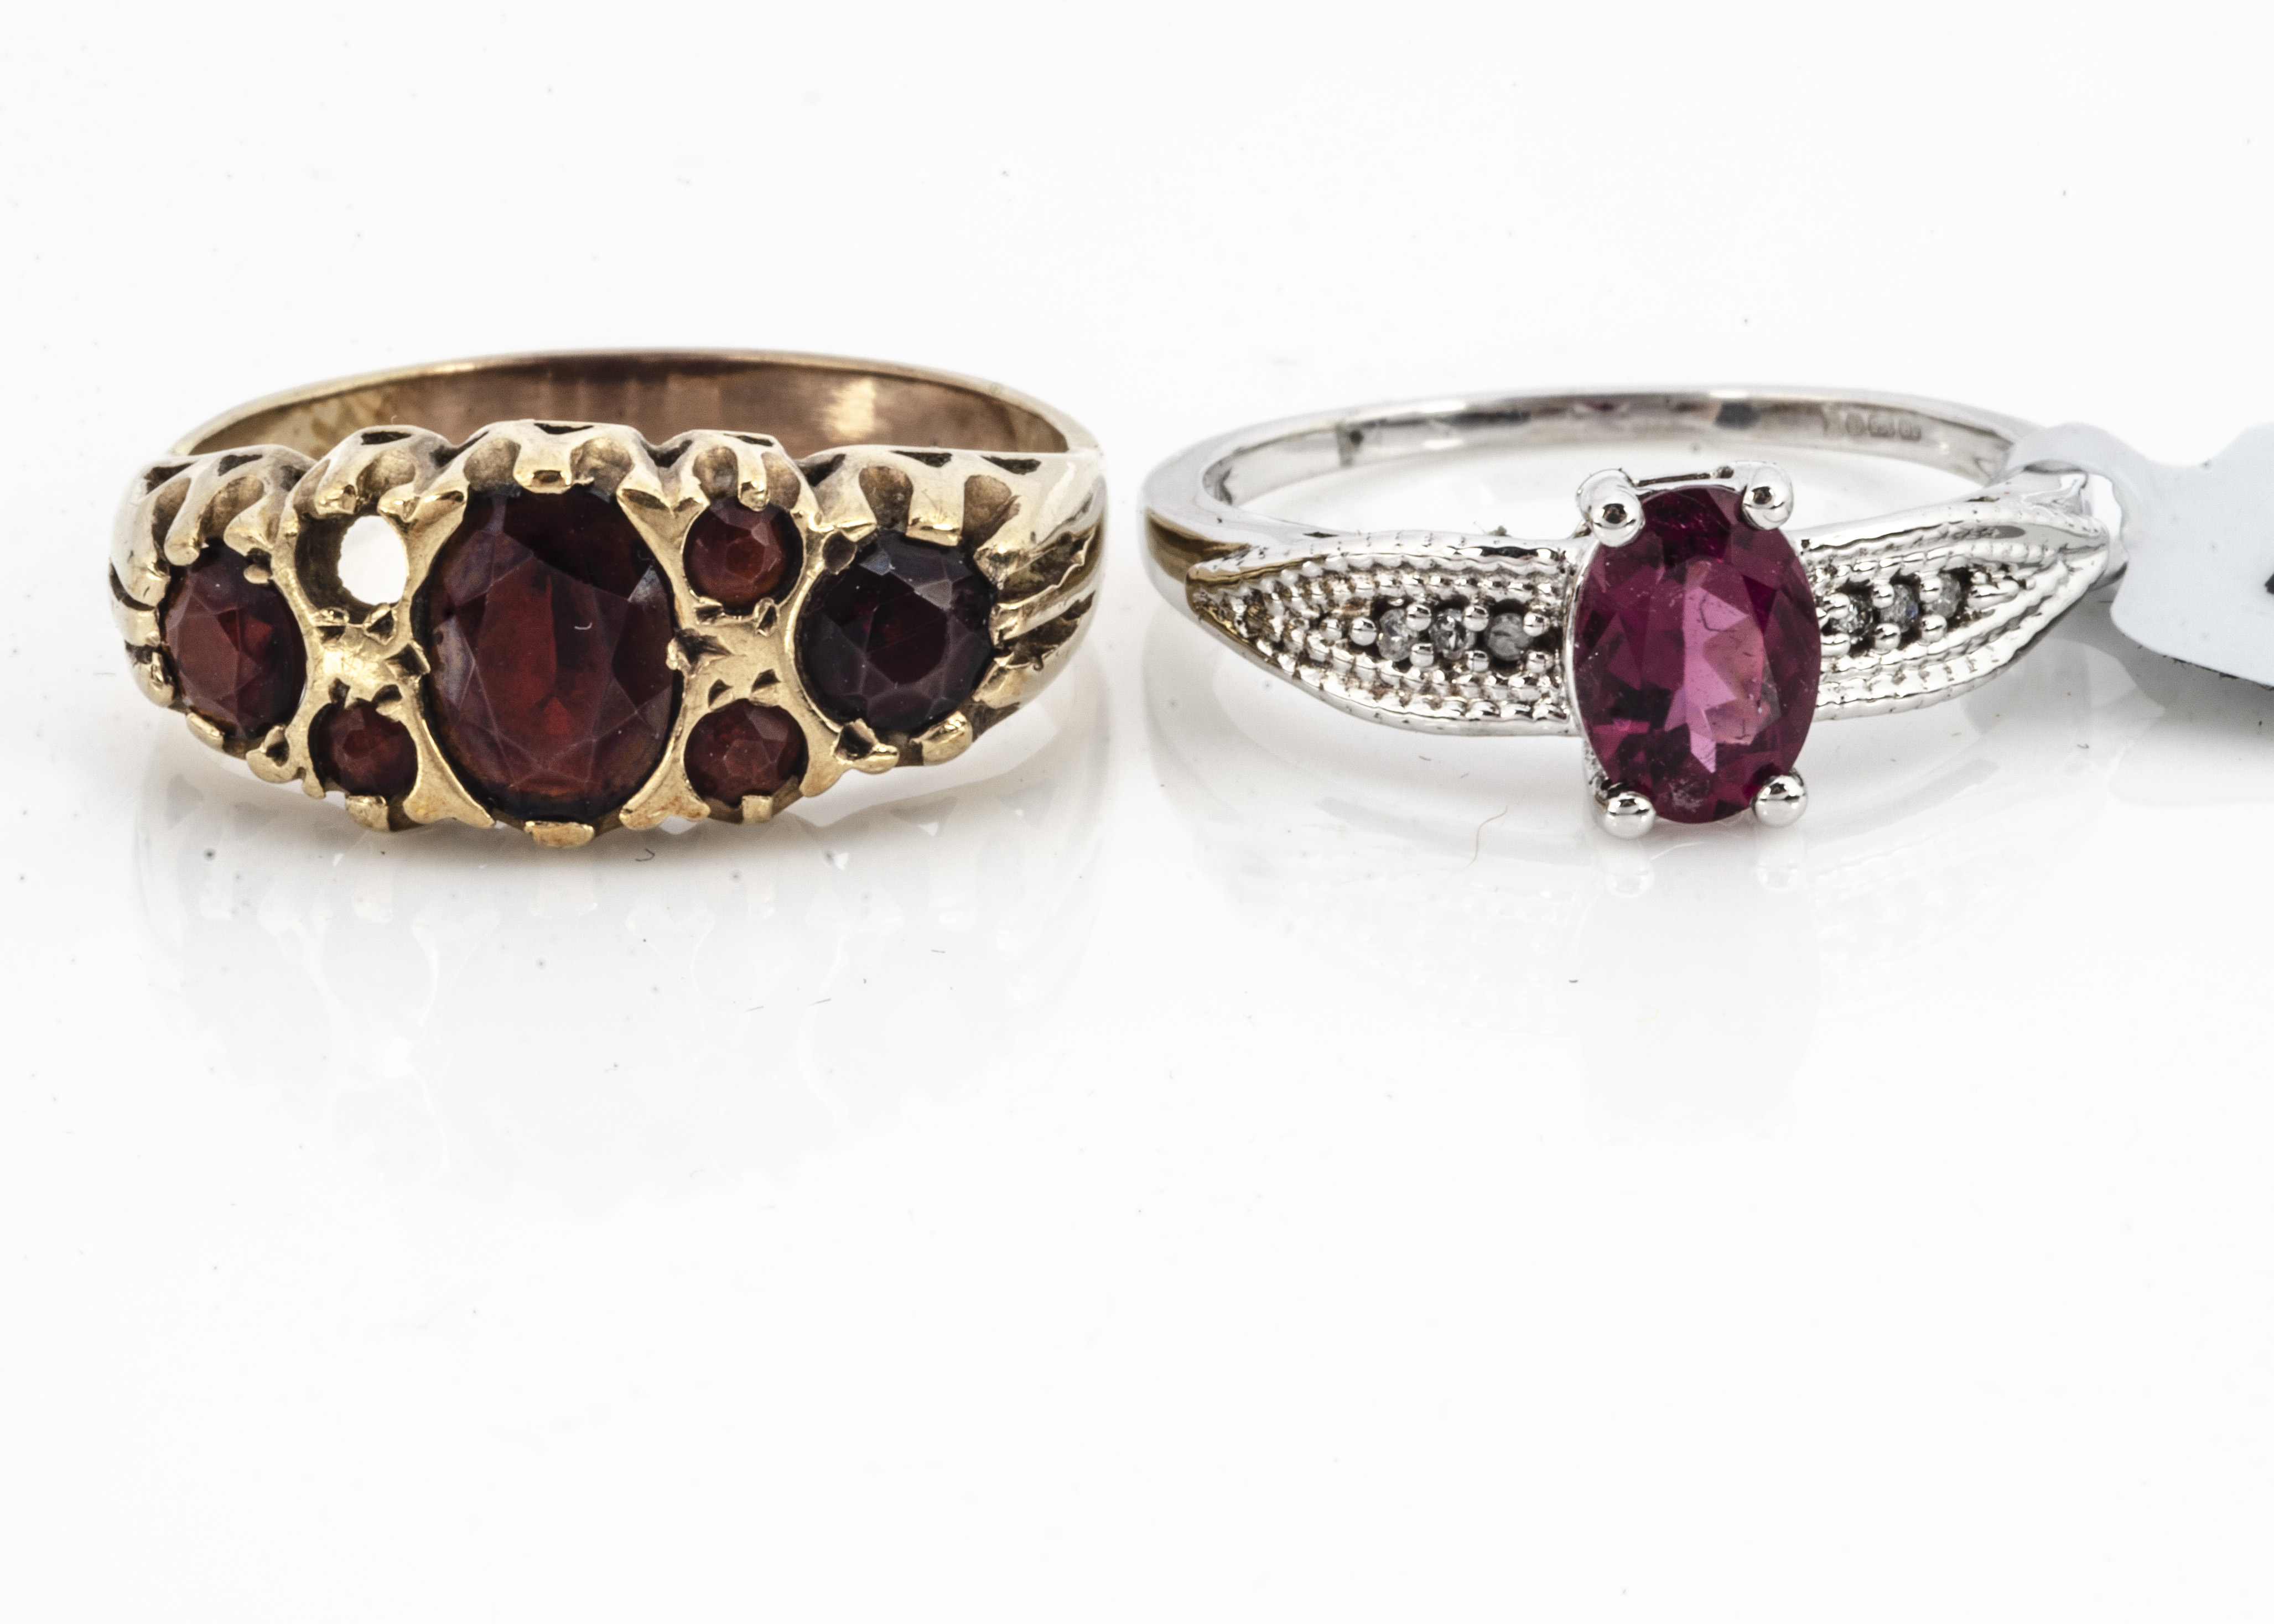 A 9ct gold garnet dress ring, with one setting vacant, ring size Q, together with a white 9ct gold